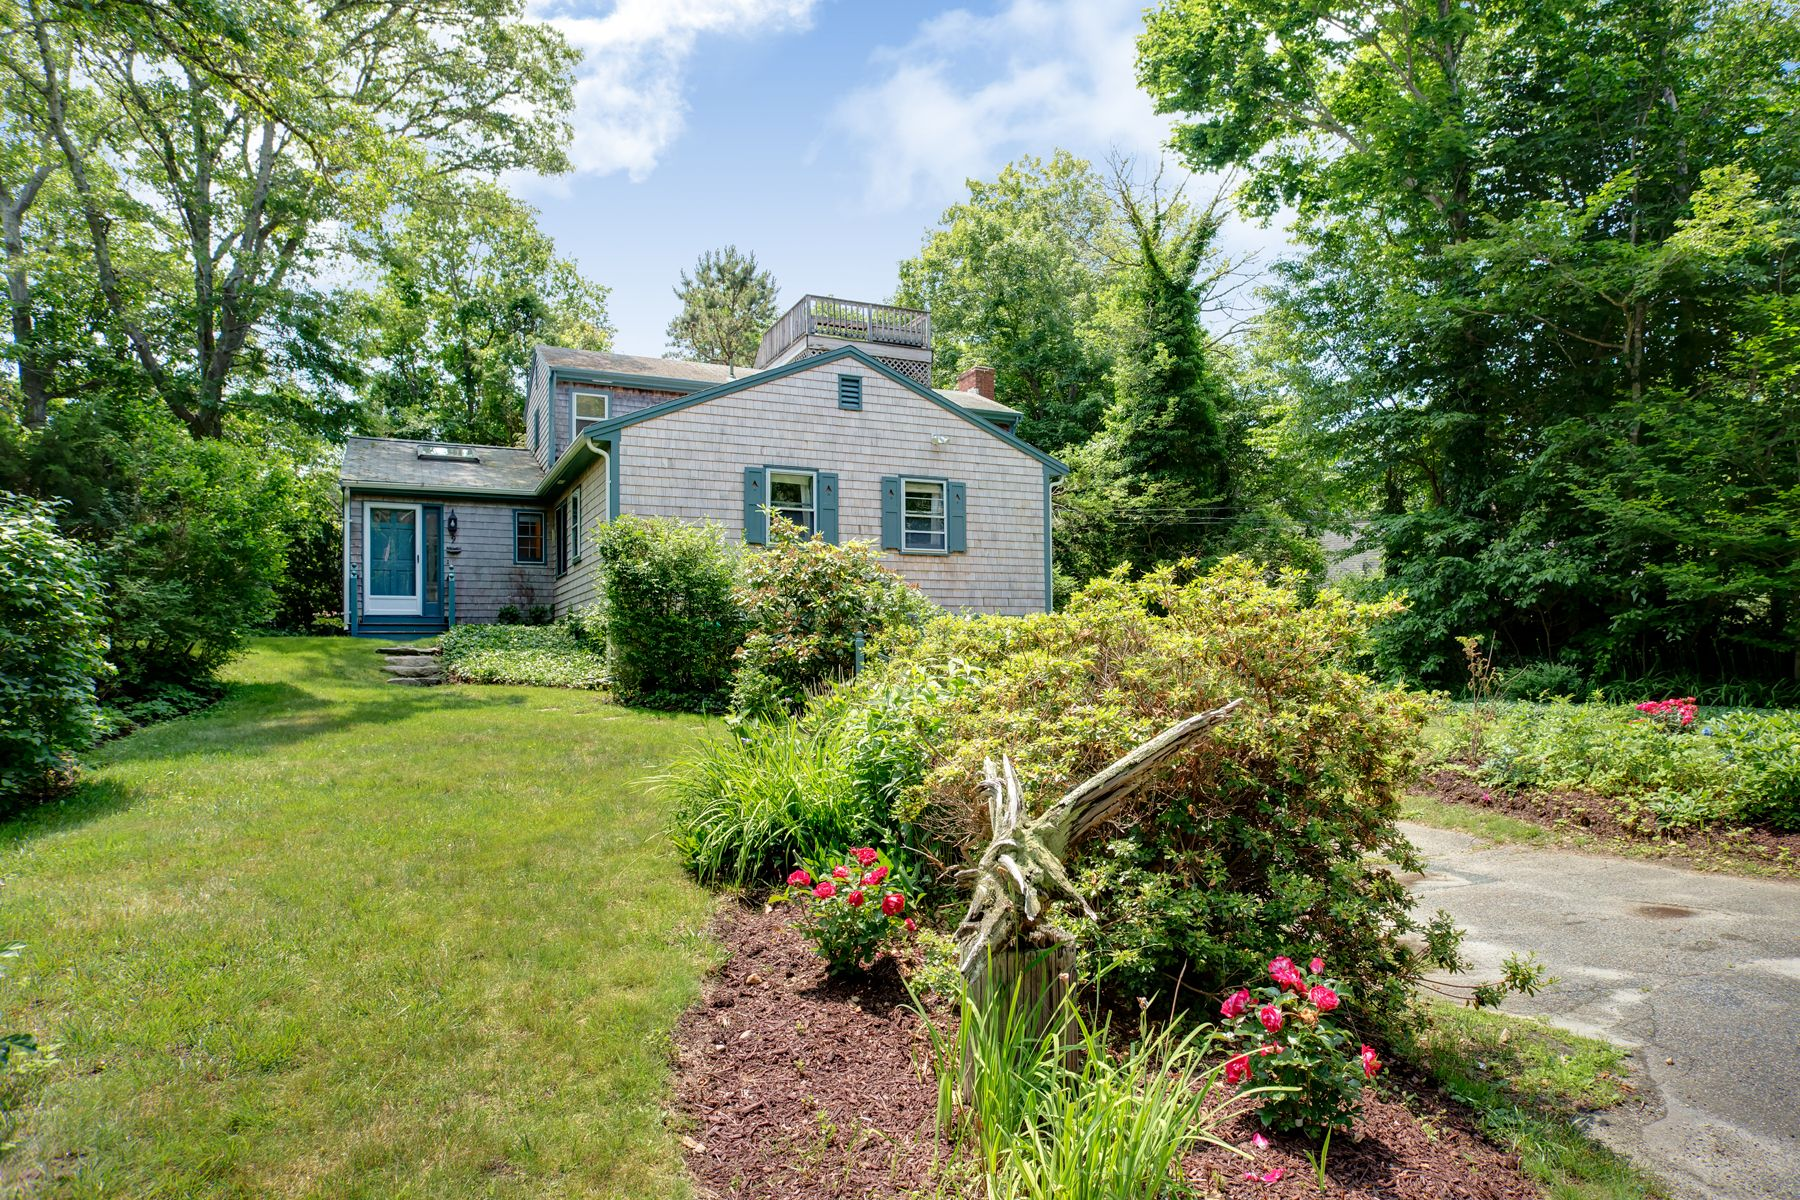 Single Family Homes for Sale at Woods Hole Village Living! 9 Strawberry Hill Road Woods Hole, Massachusetts 02543 United States